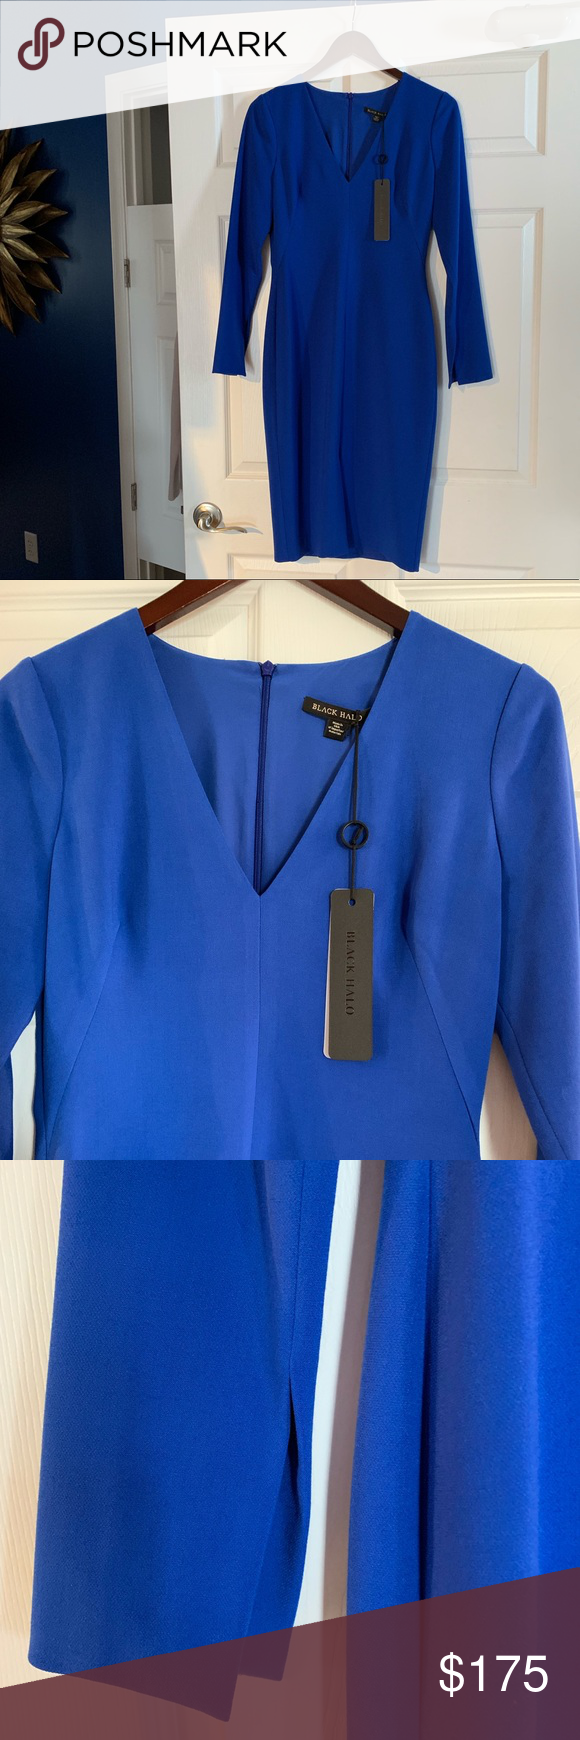 c7e2bd74 NWT Black Halo Sambora Sheath Dress Be bold in this stunning cobalt blue  long sleeve sheath dress. Perfect for cocktail parties, weddi…